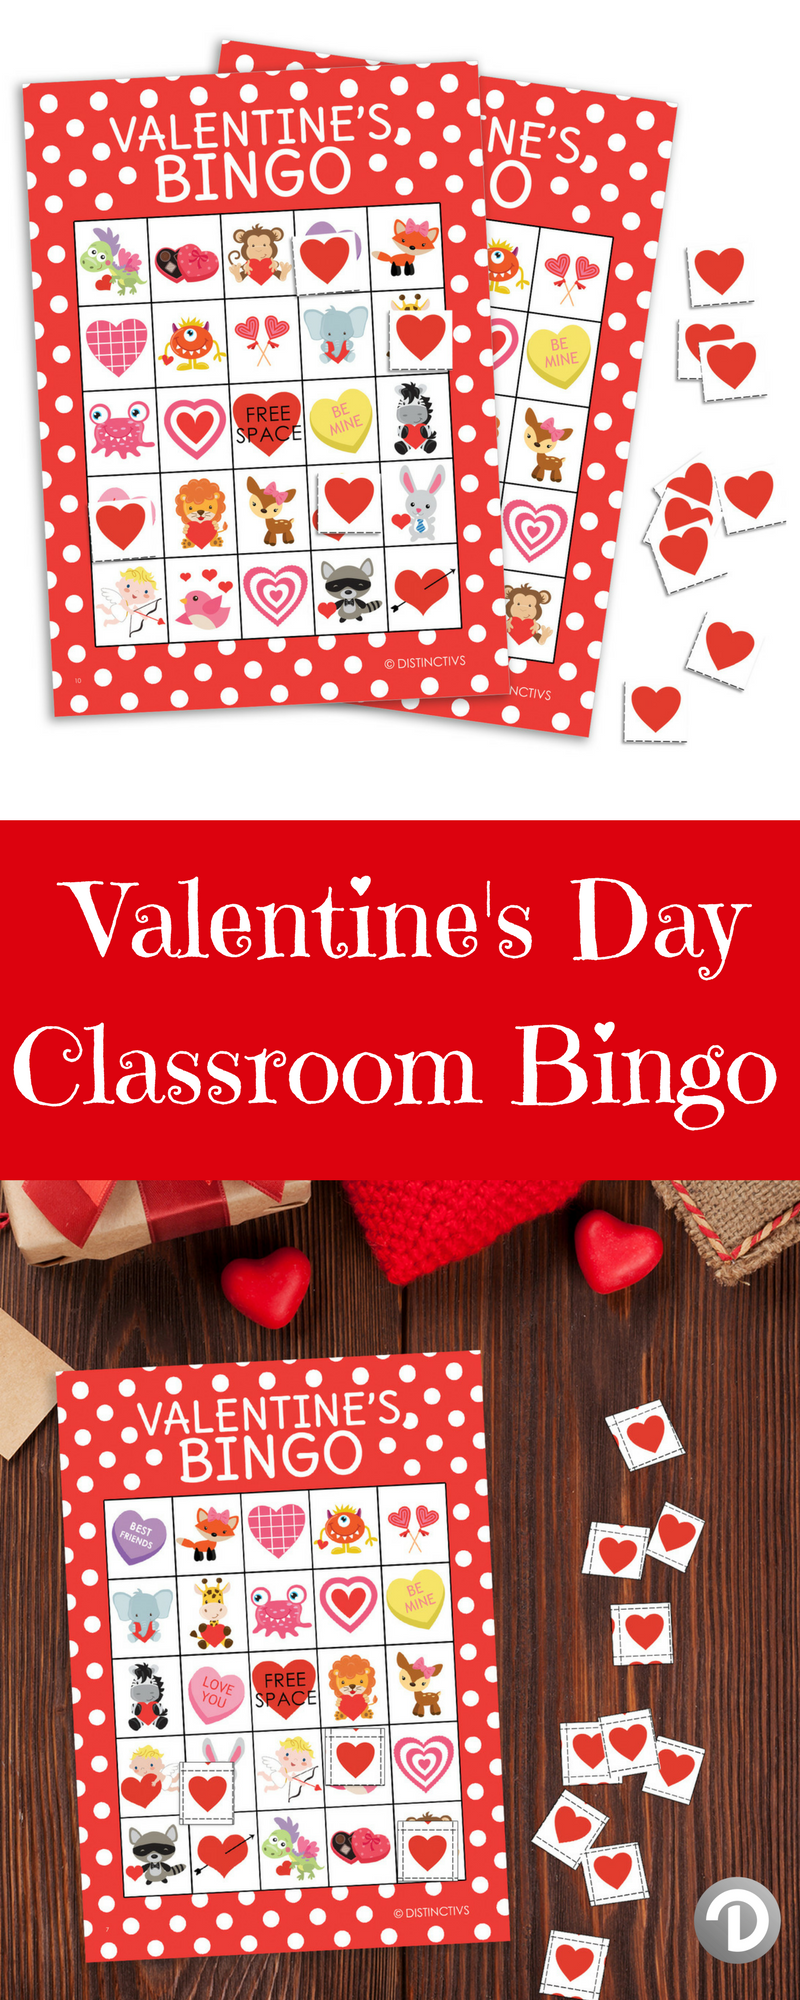 Valentines day bingo game party activity 24 player cards